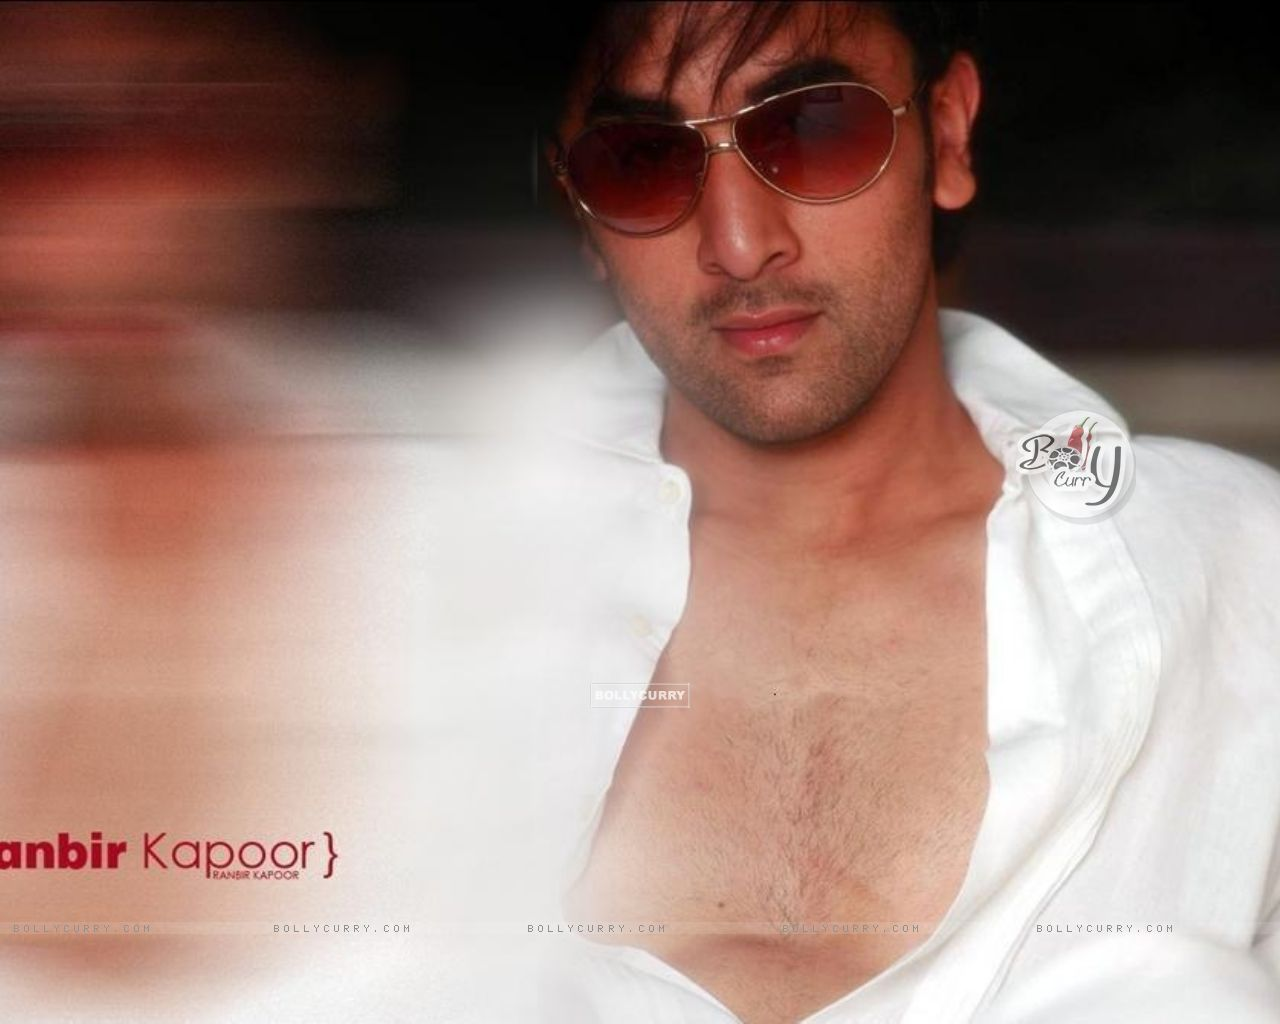 ranbir kapoor wallpaper